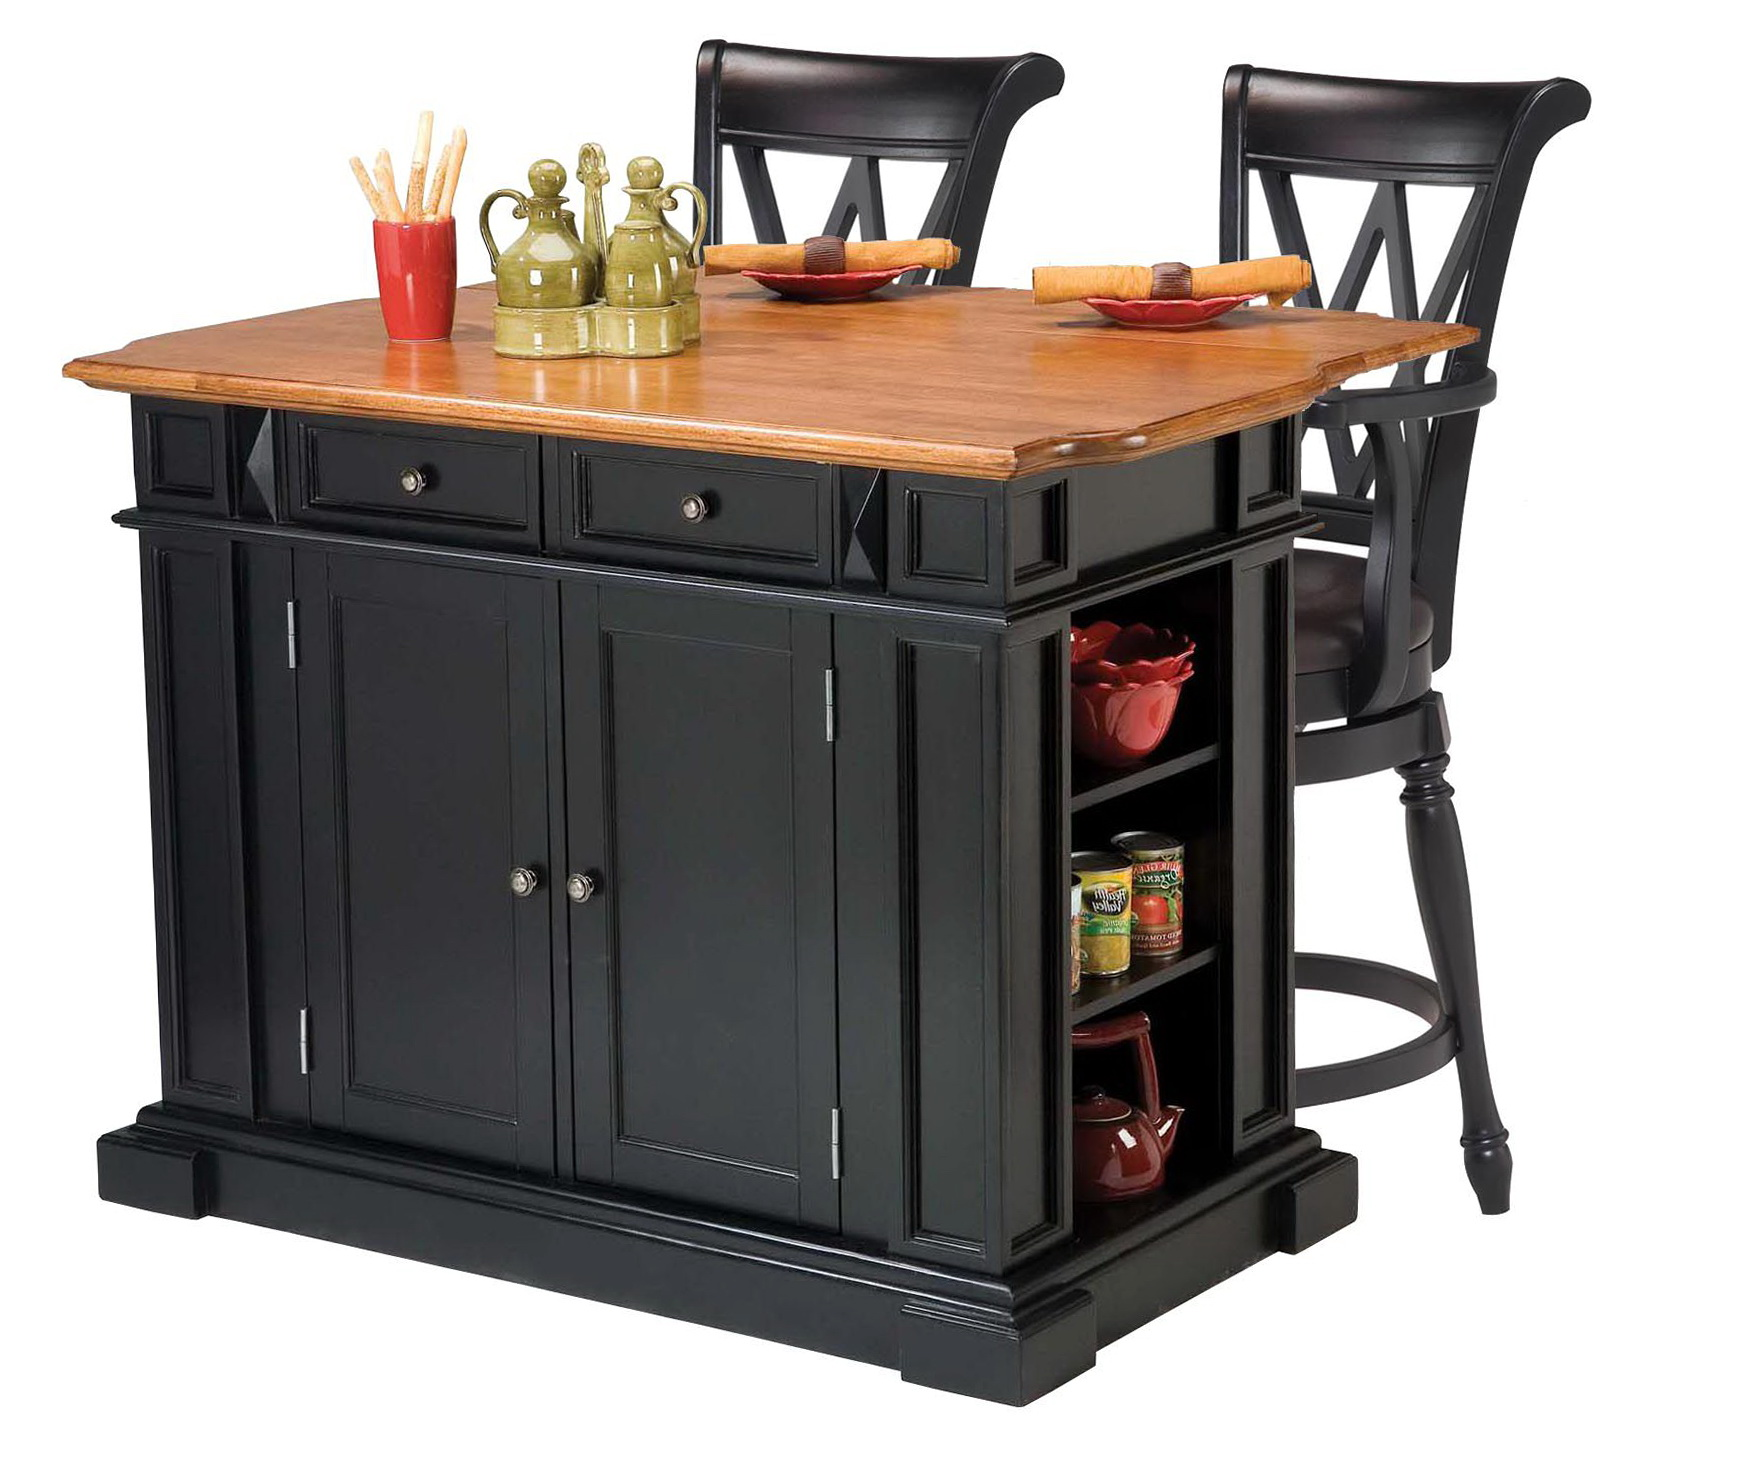 Black Kitchen Island With Stools